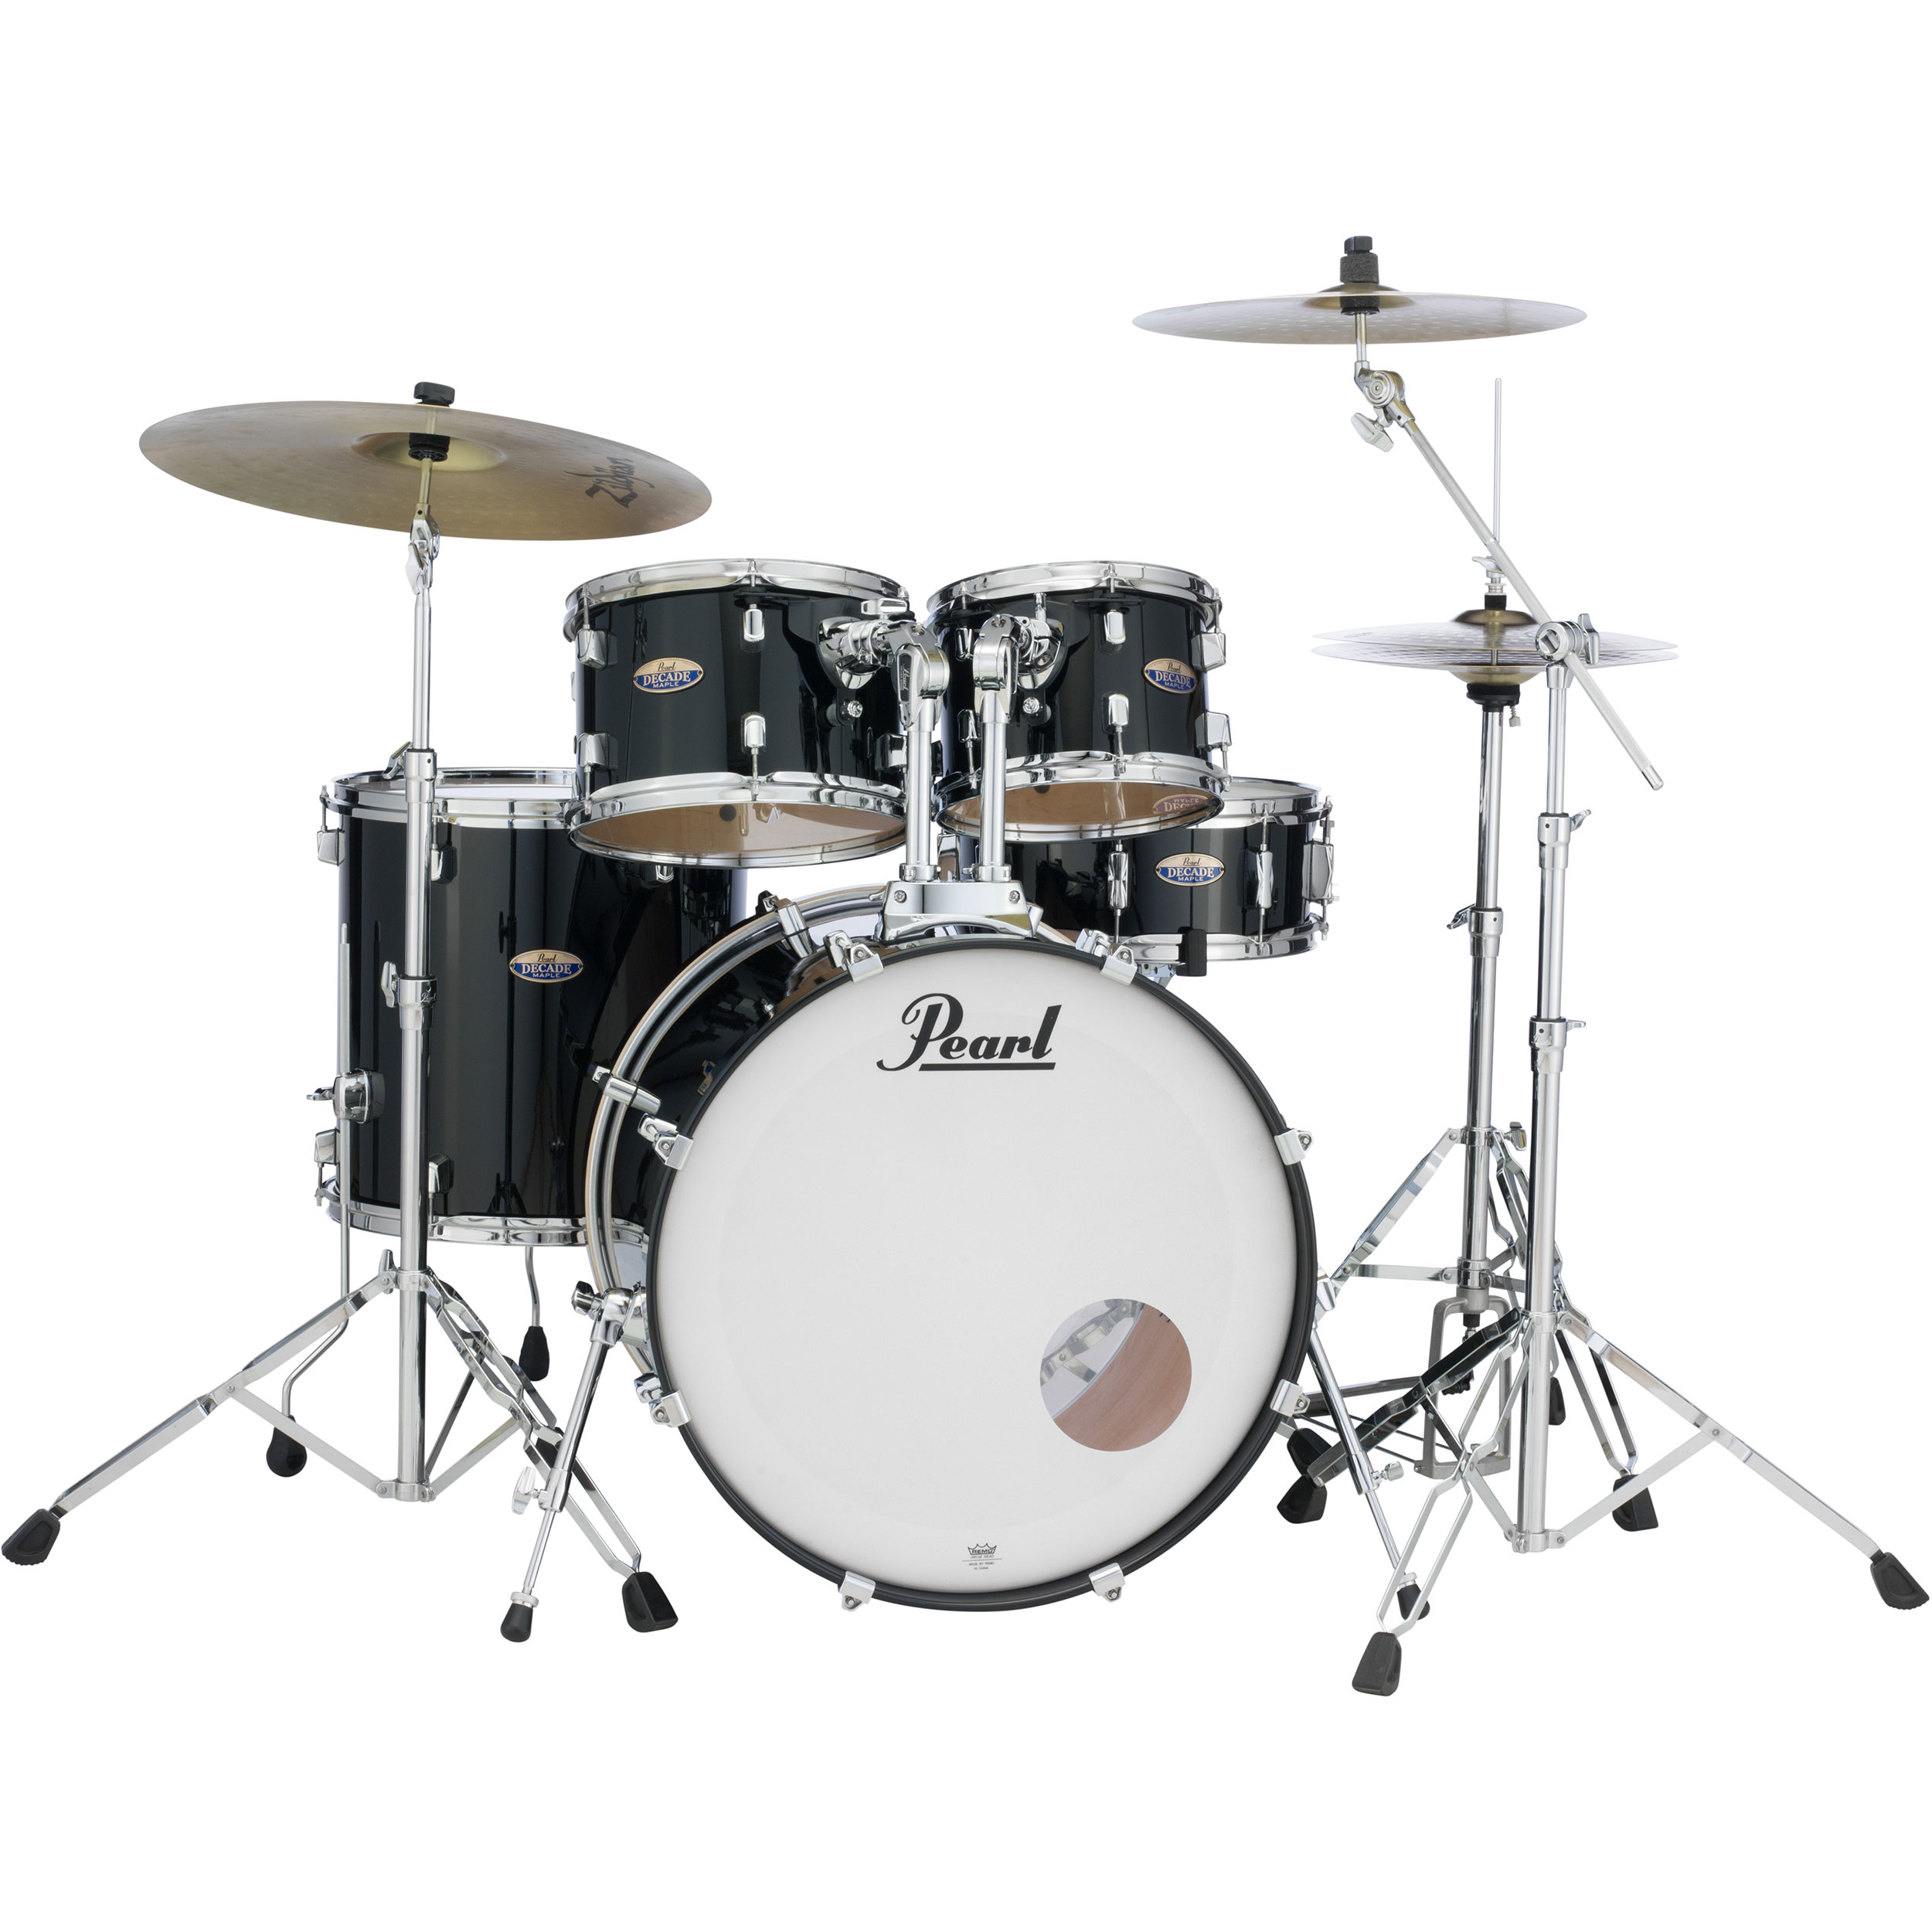 Pearl Decade Maple 5-Piece Drum Set with 830 Series Hardware and Zildjian Planet Z Cymbals  (22B, 10/12/16T, 14S) in Black Ice